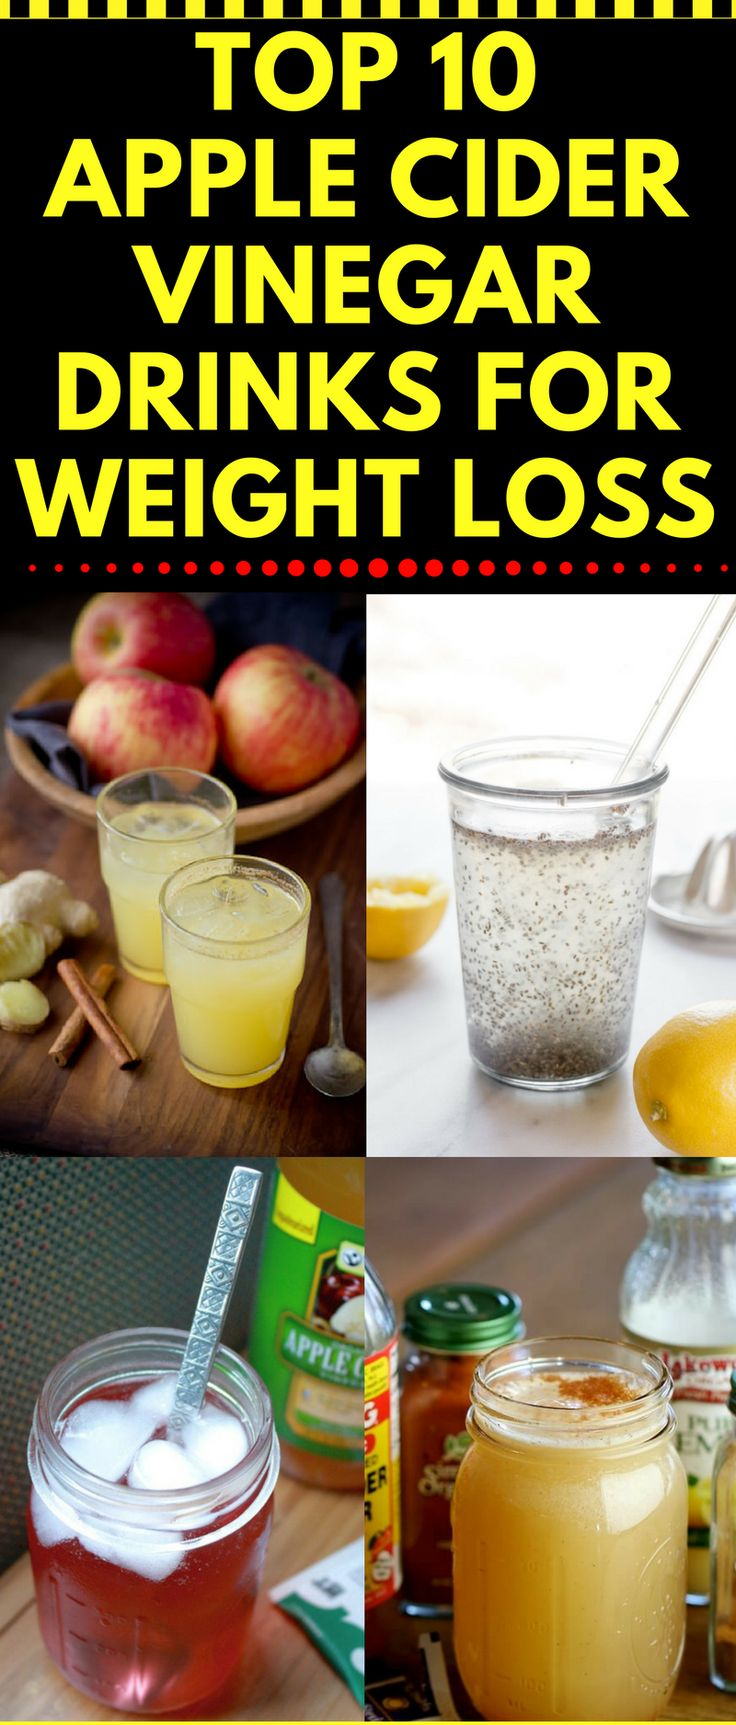 Top 10 Apple Cider Vinegar Recipes For Weight Loss